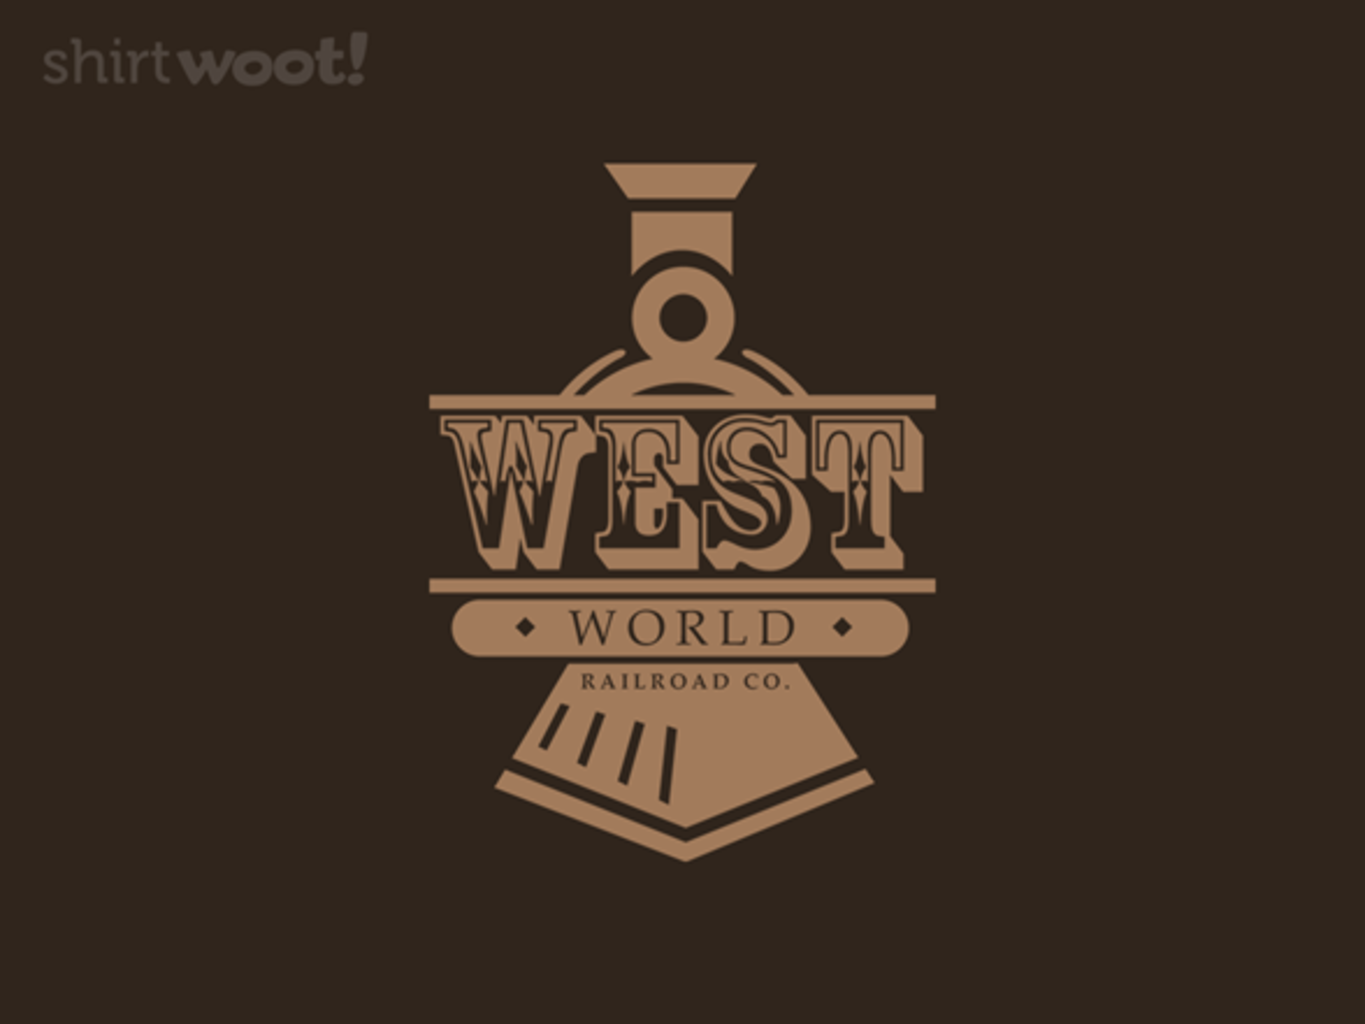 Woot!: West World Railroad - $8.00 + $5 standard shipping